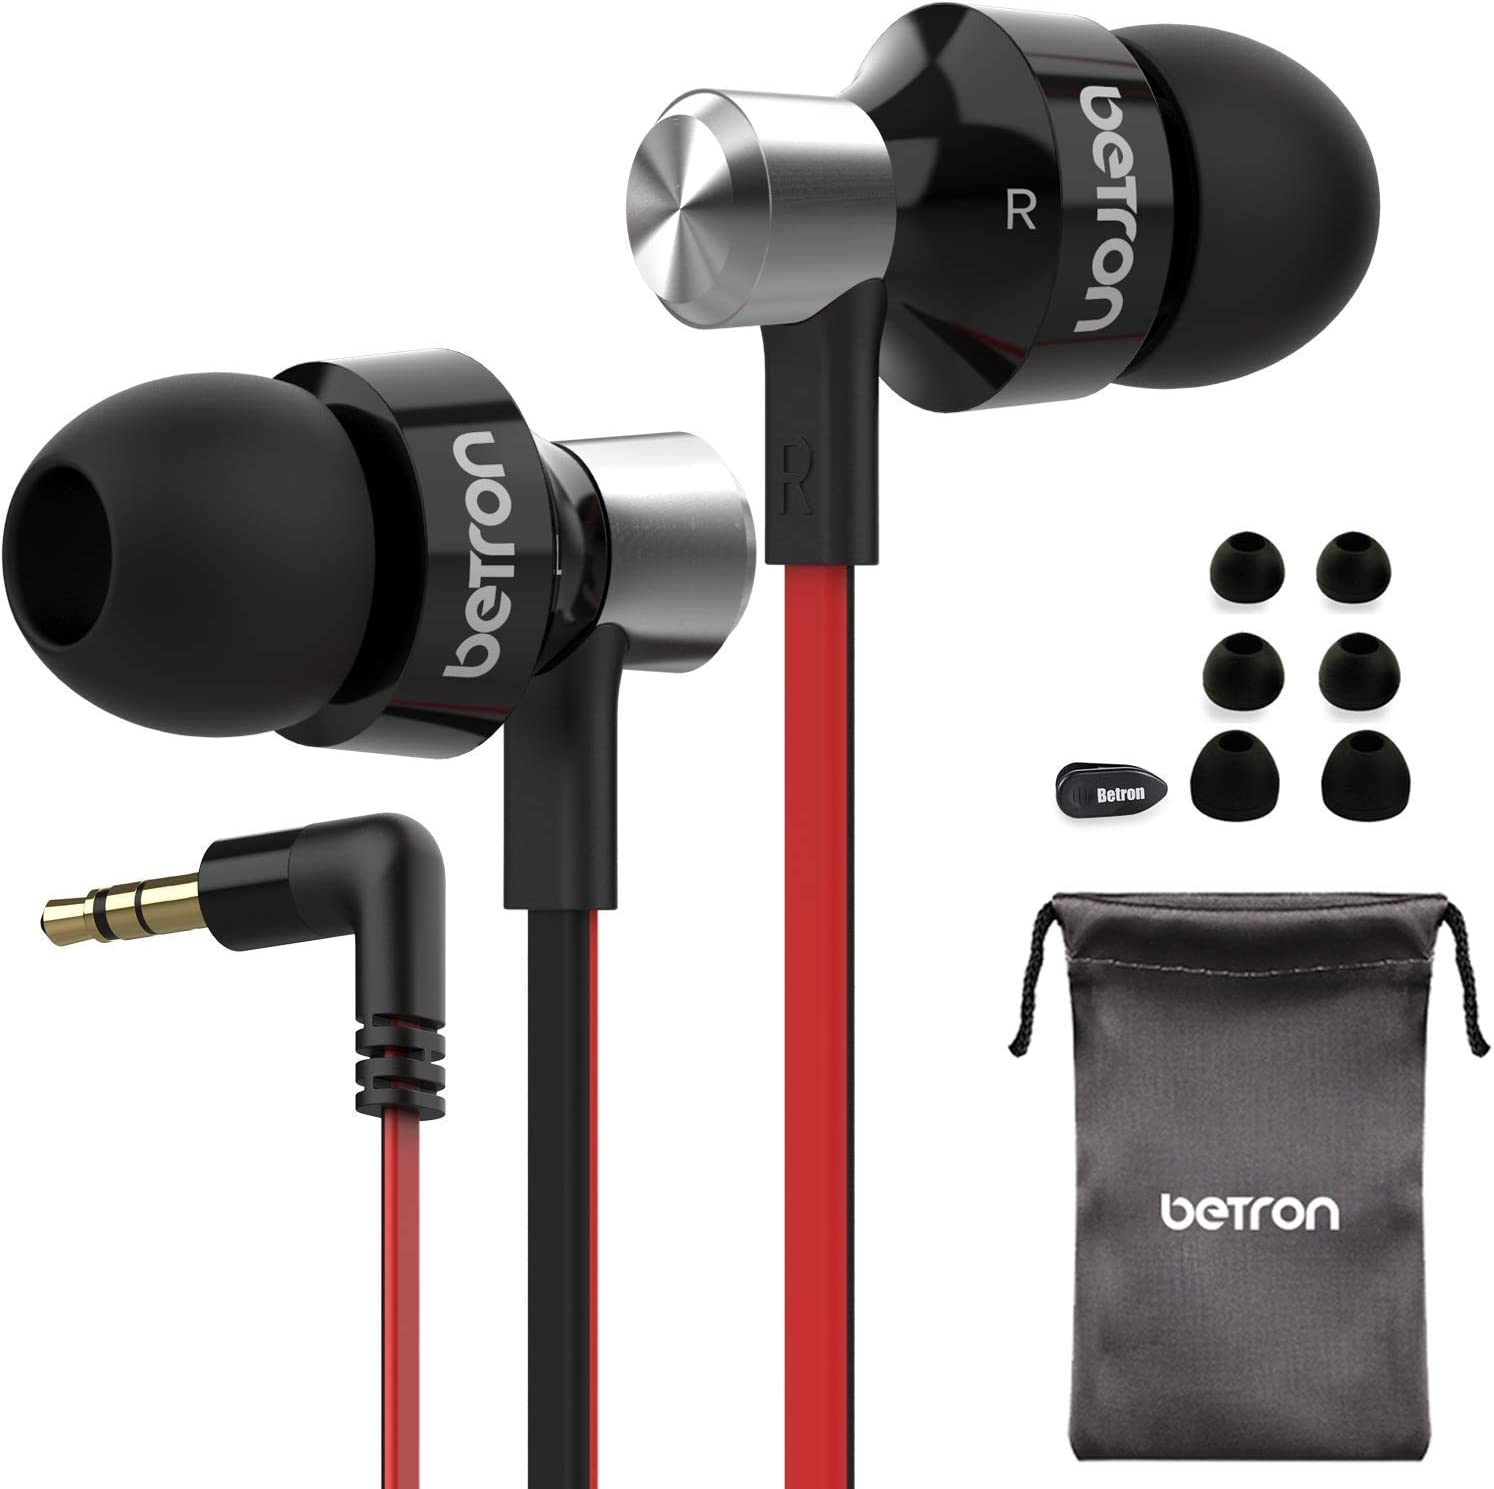 Betron DC950 Earphone, Noise Isolating, Powerful Bass, Replaceable Earbuds, Portable in Ear Headphones